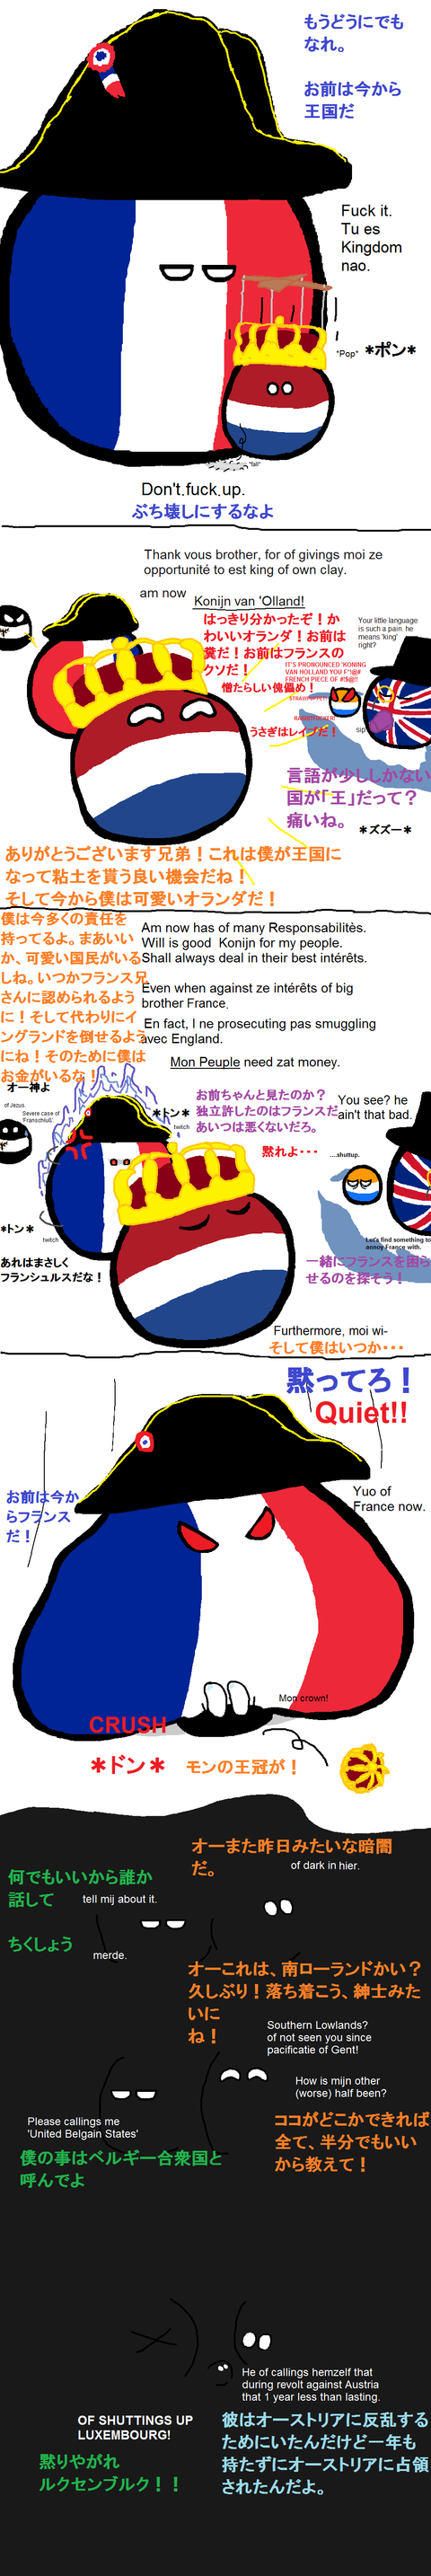 Kingdom of Holland some things are really really not meant to be